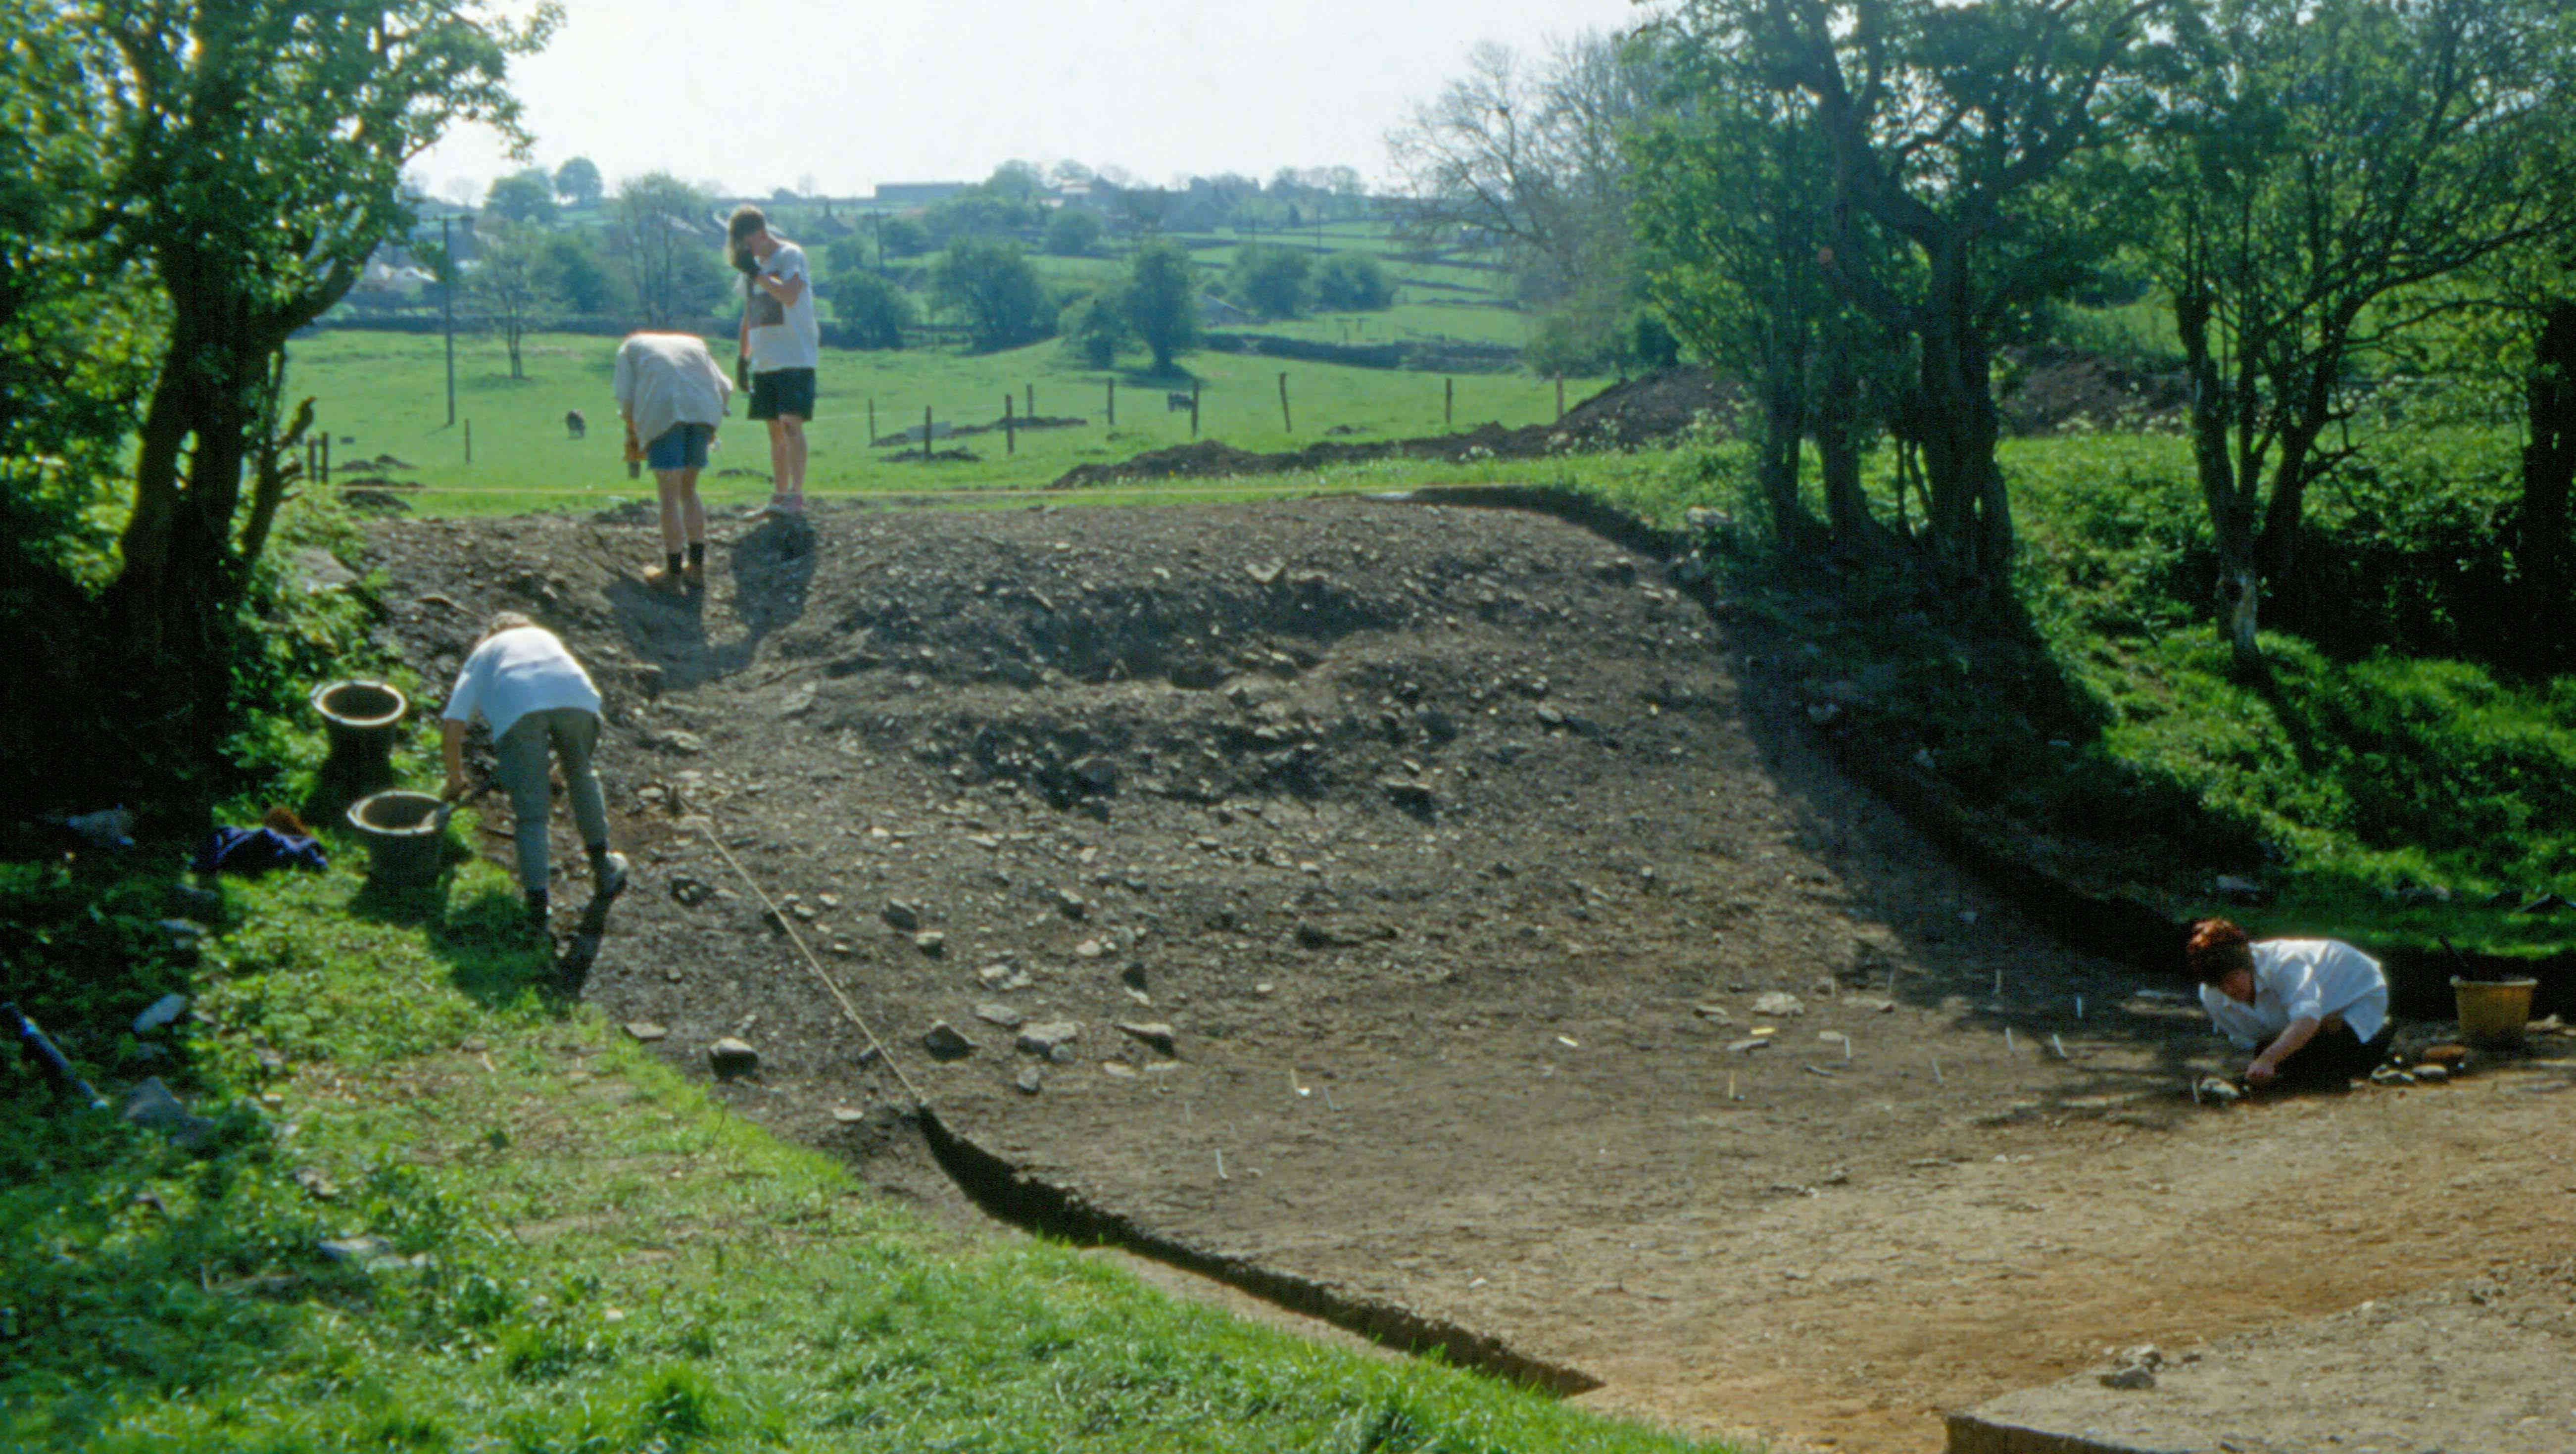 A photo of four people excavating a grassy bank, revealing stony debris.